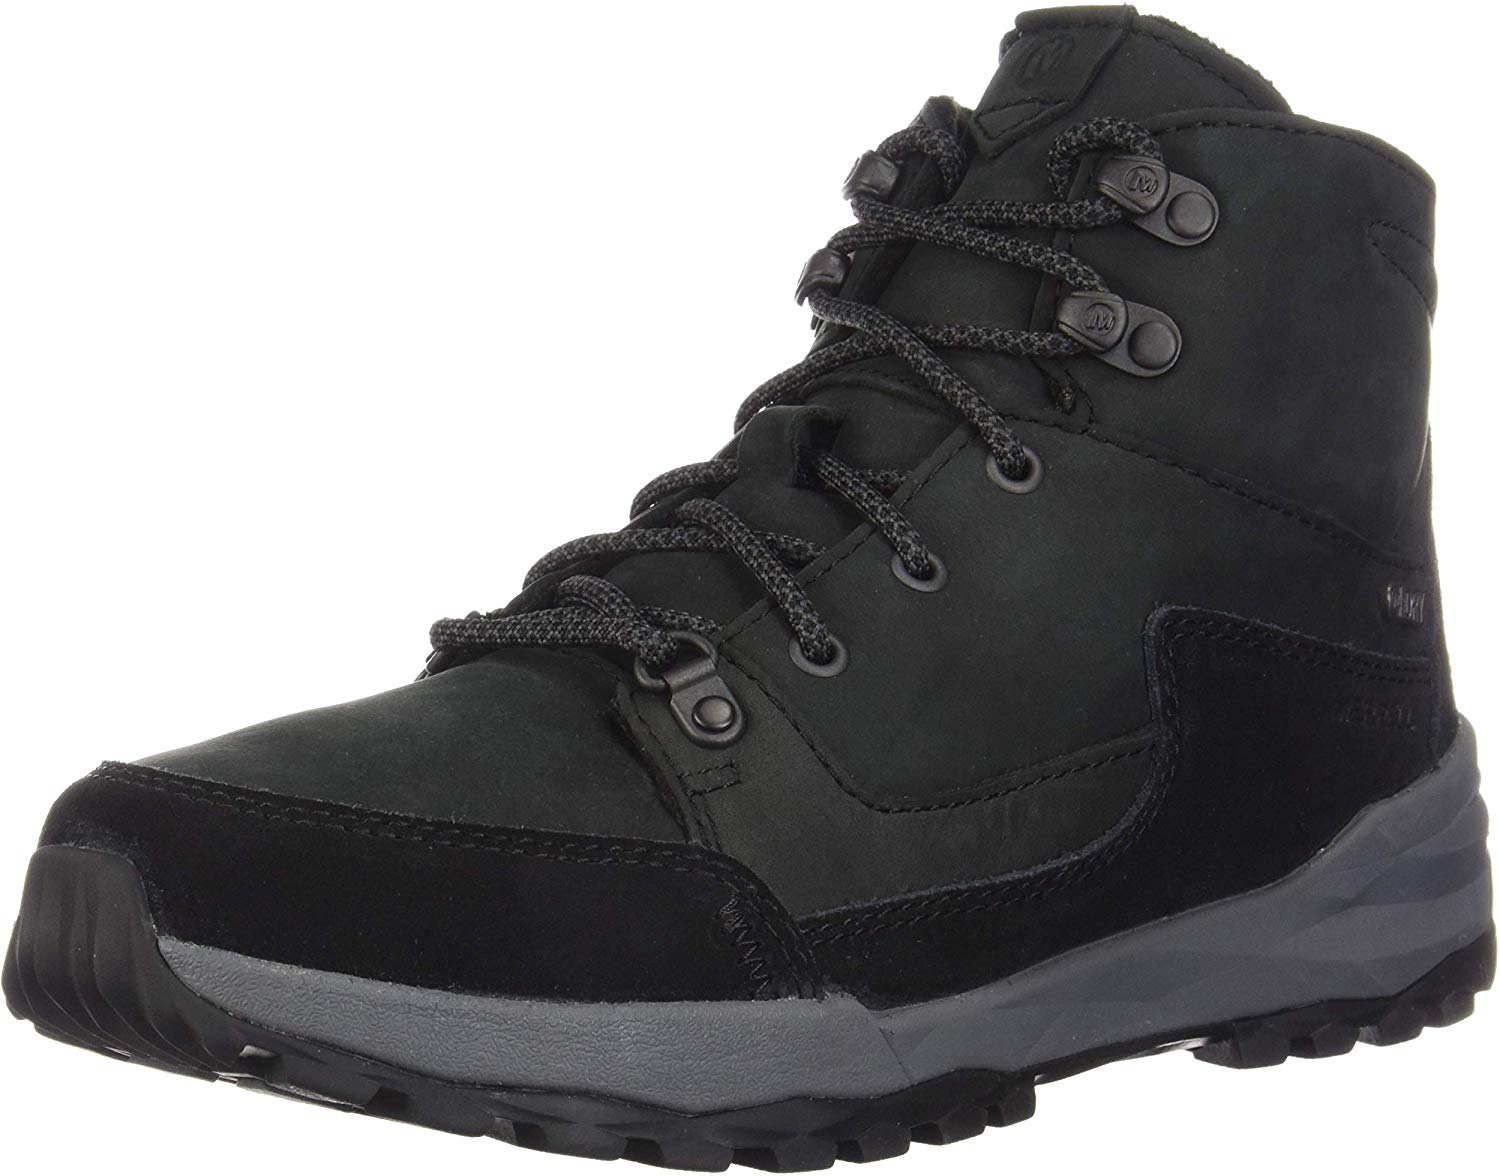 Best snow and ice boots for women - Merrell Women's Icepack Lace Up Polar Waterproof Winter Boot